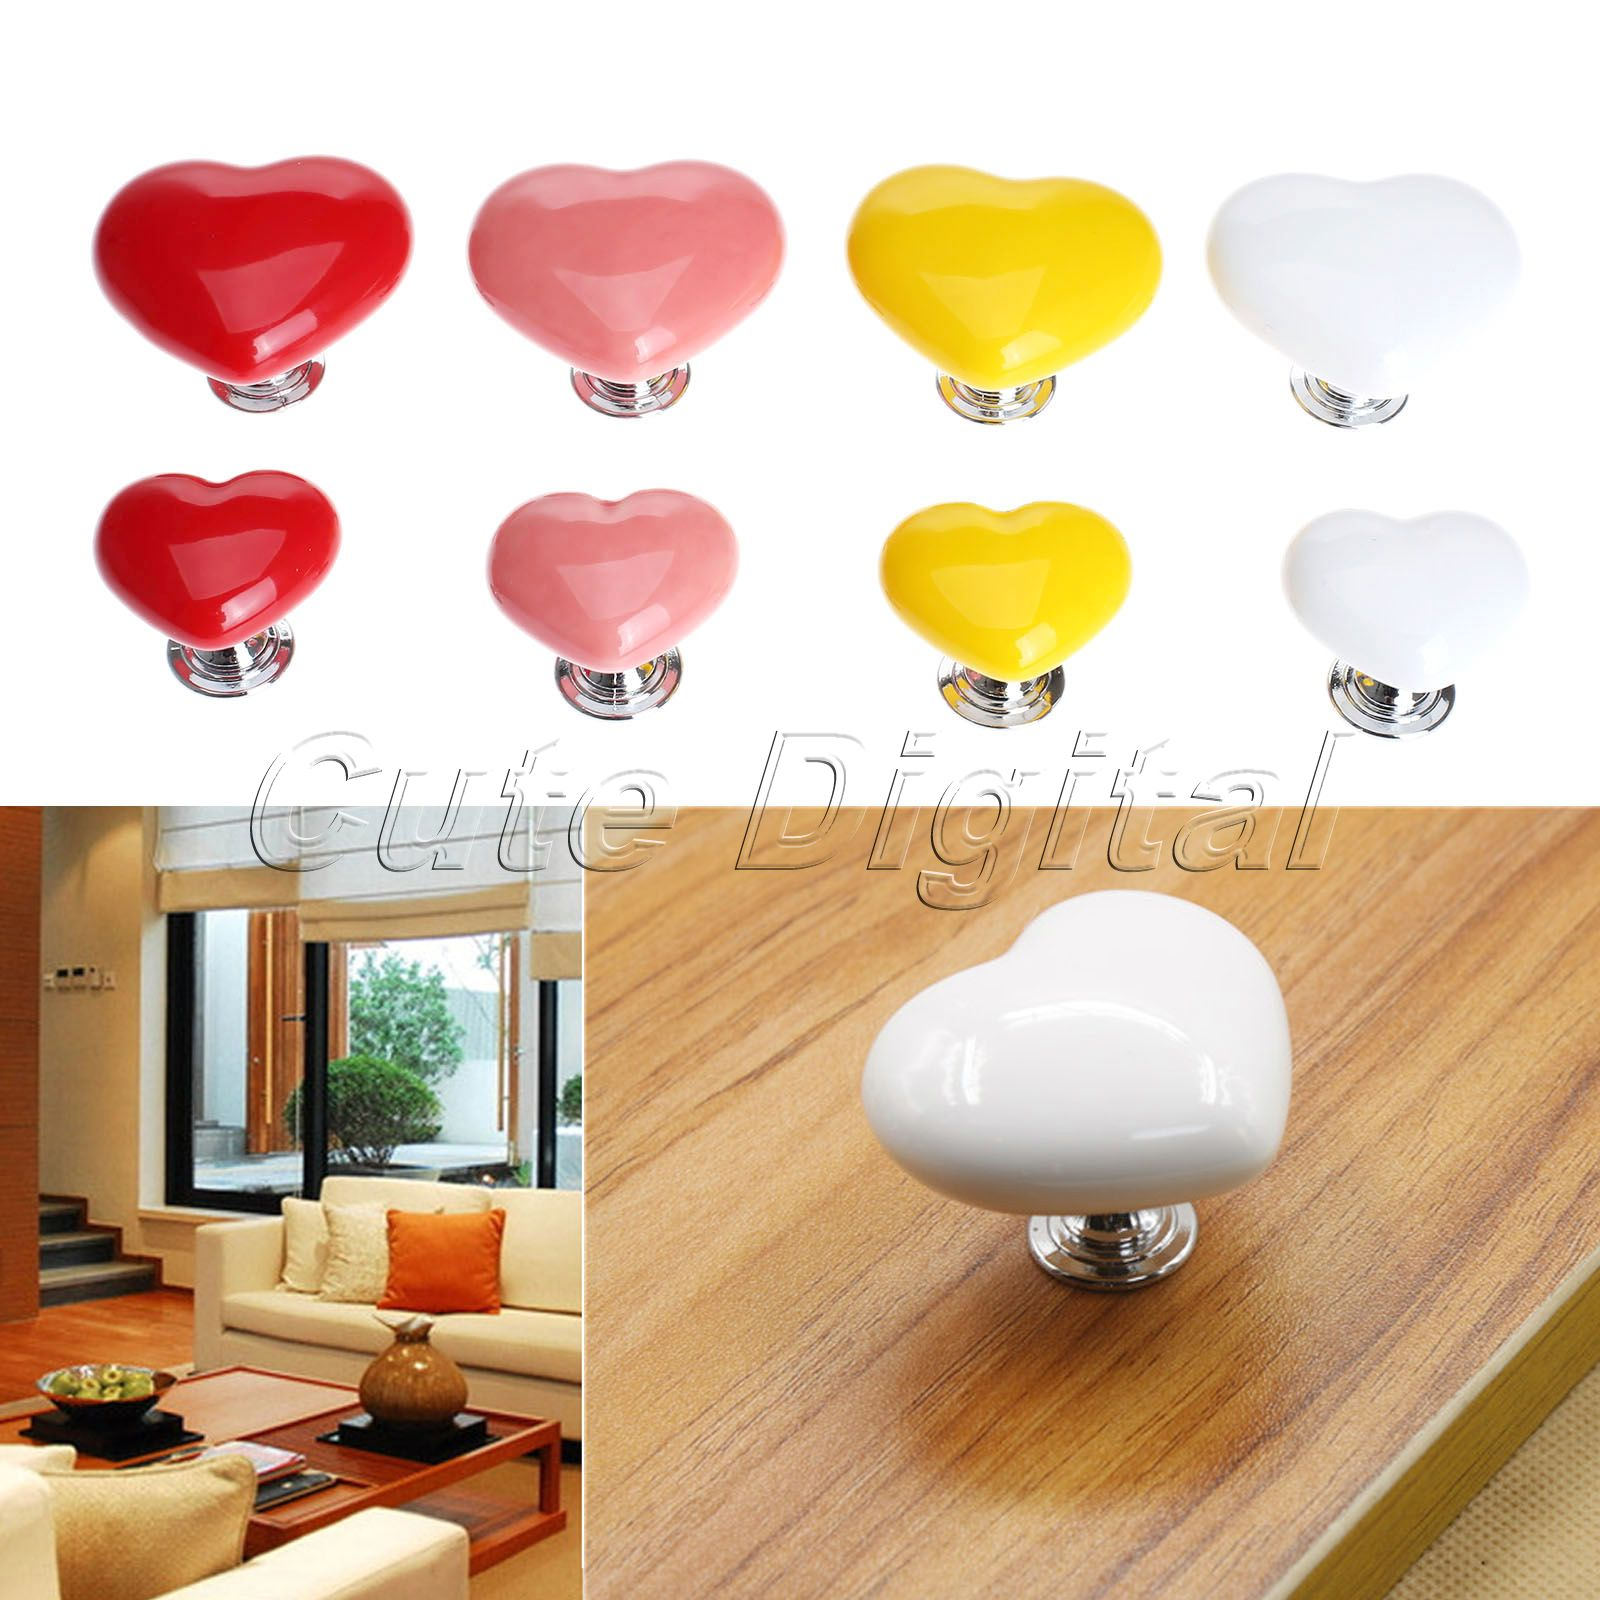 2016 New kitchen Handles and Knobs Ceramic Door Handles Door Knob Cabinet Cupboard Drawer Pull Knobs Fittings for Furniture pastoralism pumpkin ceramic knob kitchen ceramic door cabinets cupboard knob and handles 1pcs